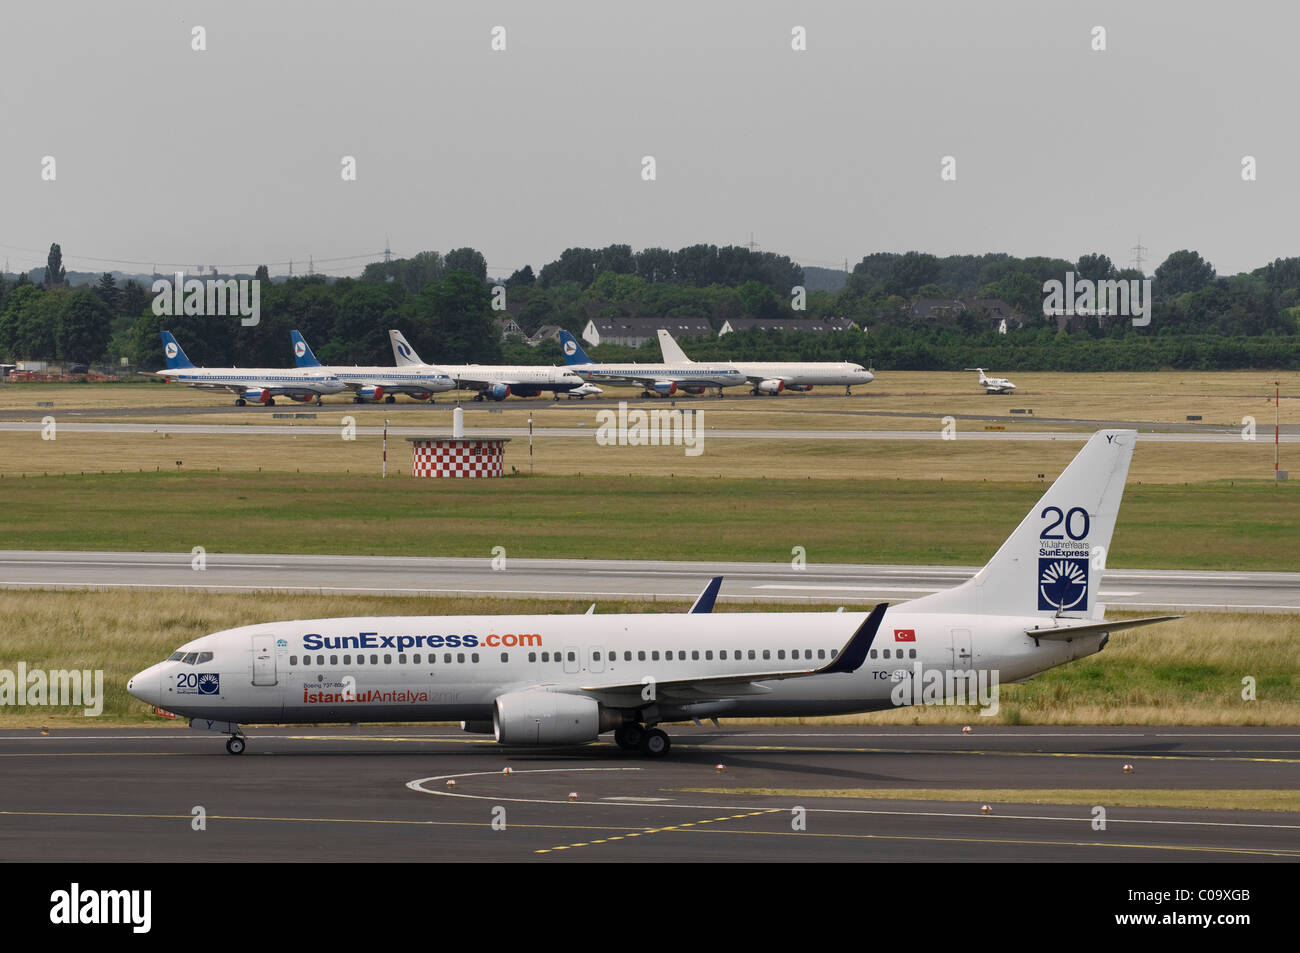 SunExpress Boeing 737-800 on the runway, planes in the back, Duesseldorf Airport, North Rhine-Westphalia, Germany, - Stock Image